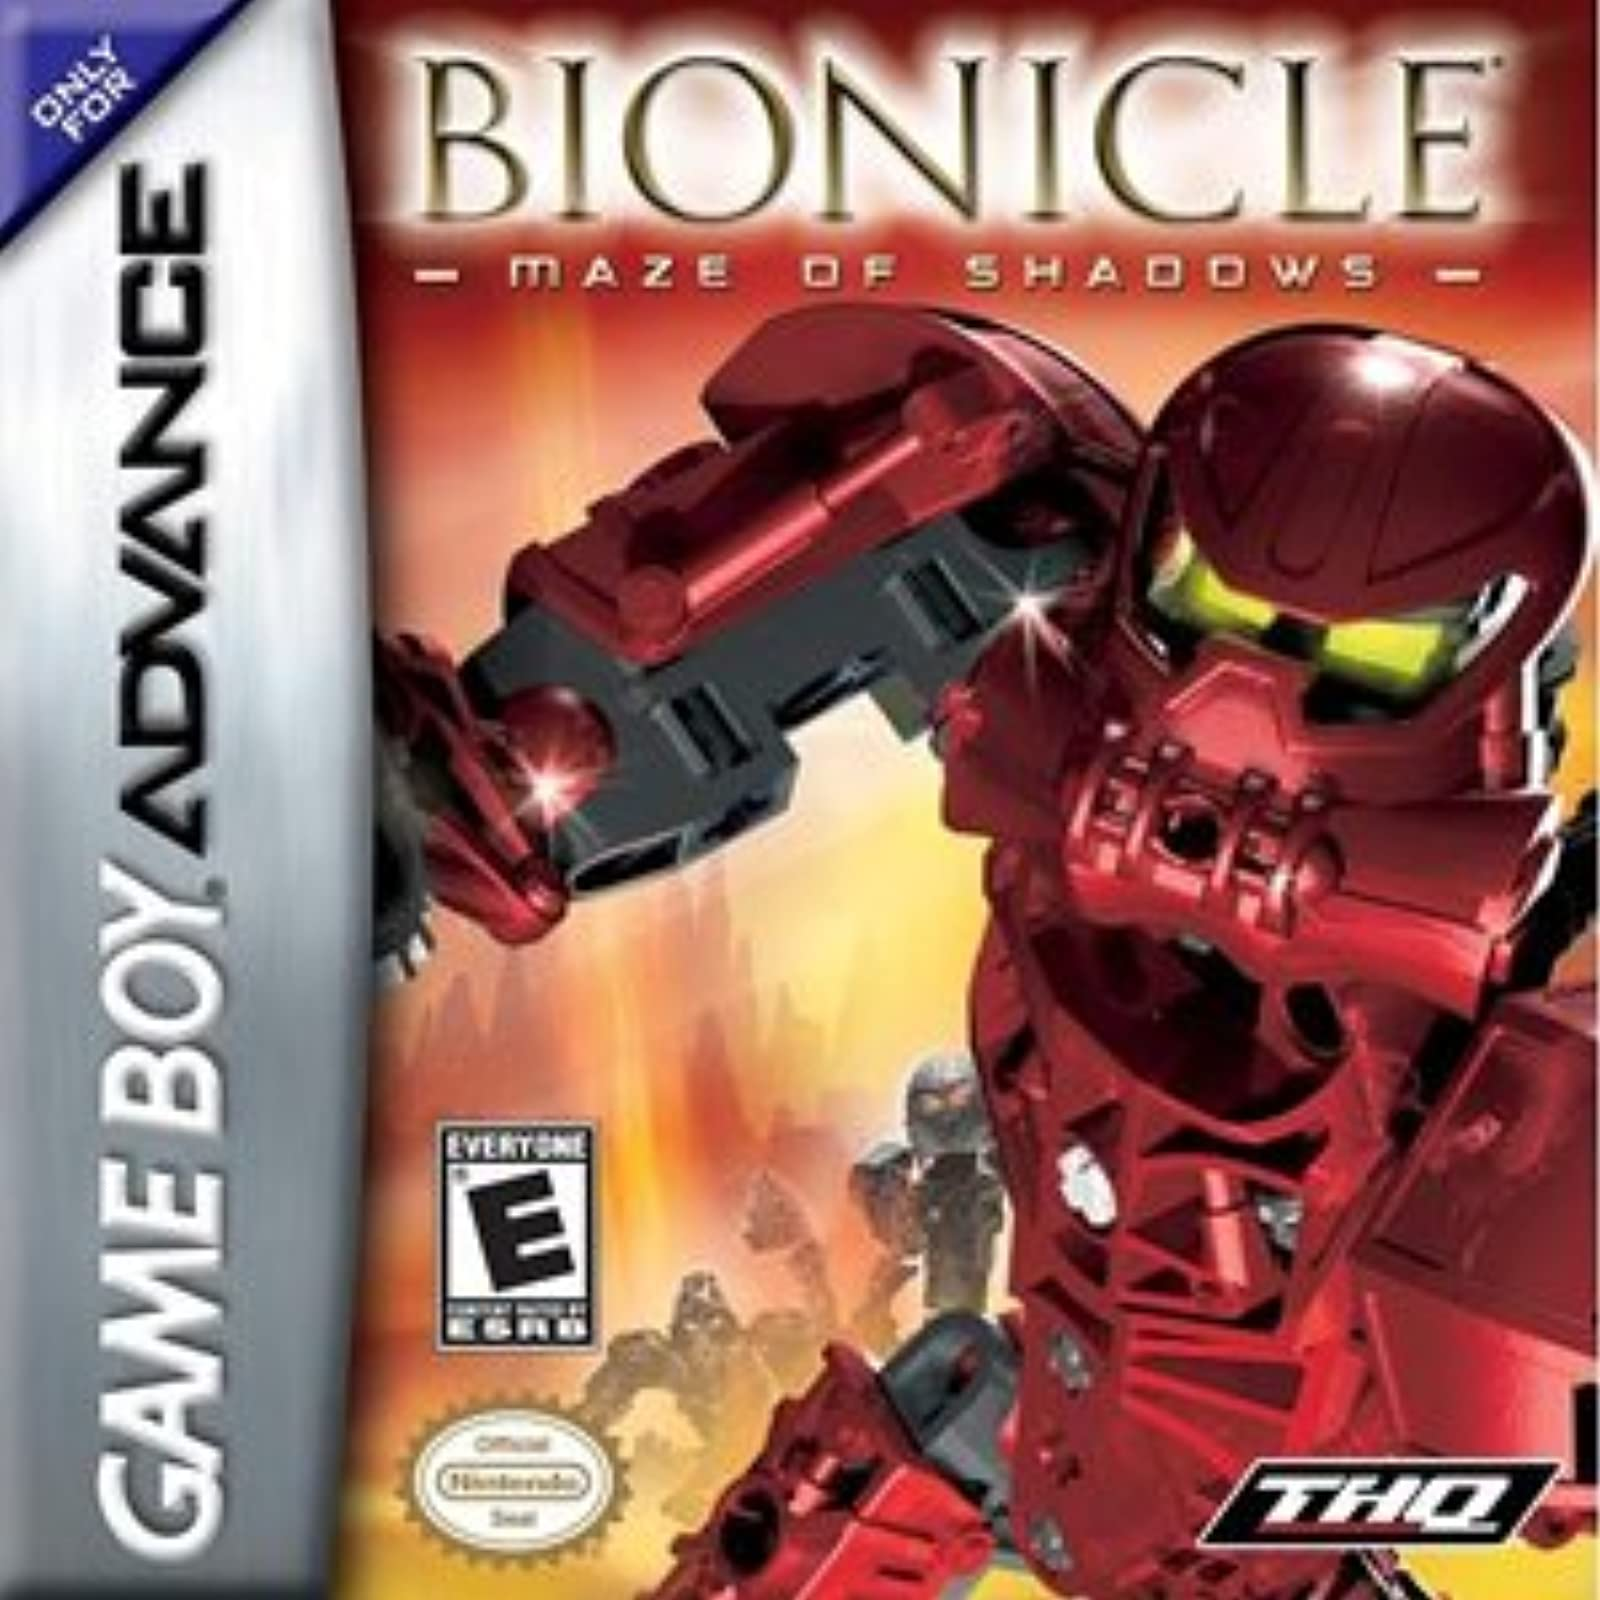 Bionicle: Maze Of Shadows GBA For GBA Gameboy Advance